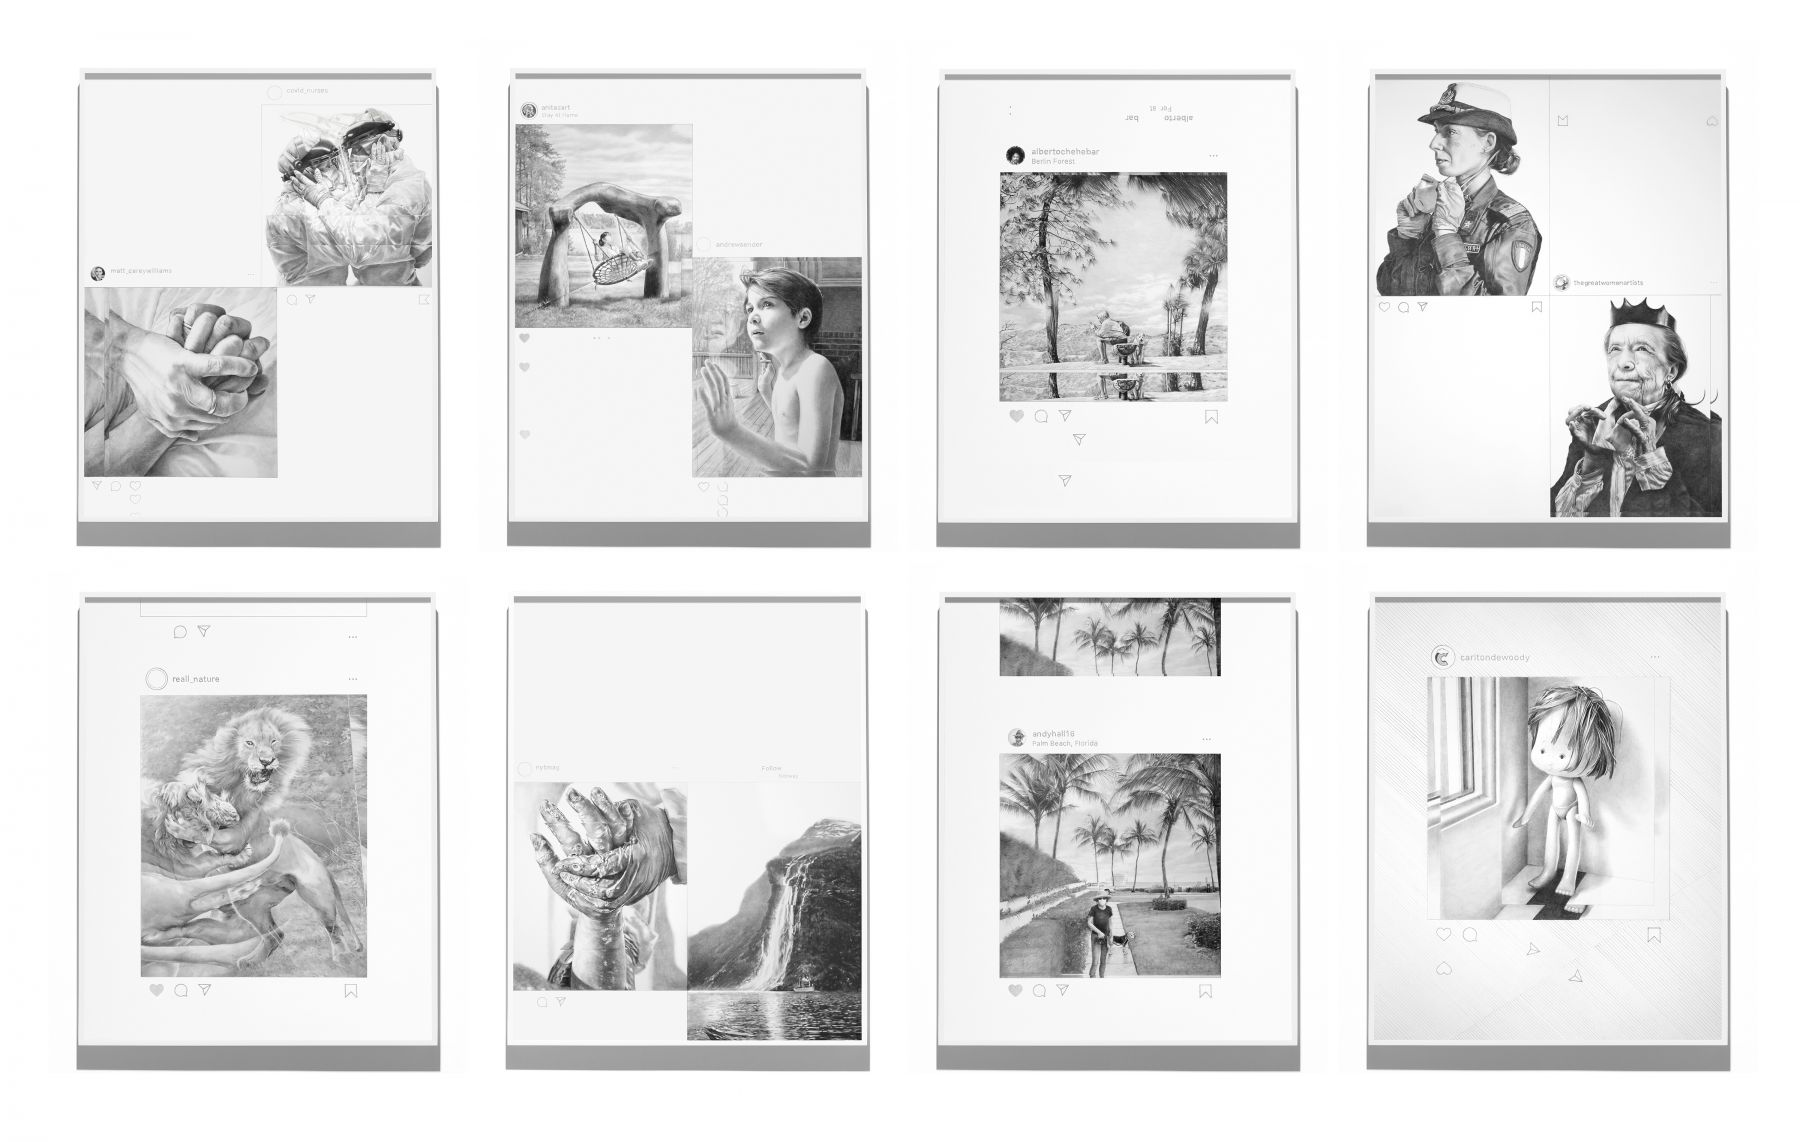 a group of framed drawings based on Instagram posts that comprise several of the works included in this online exhibition